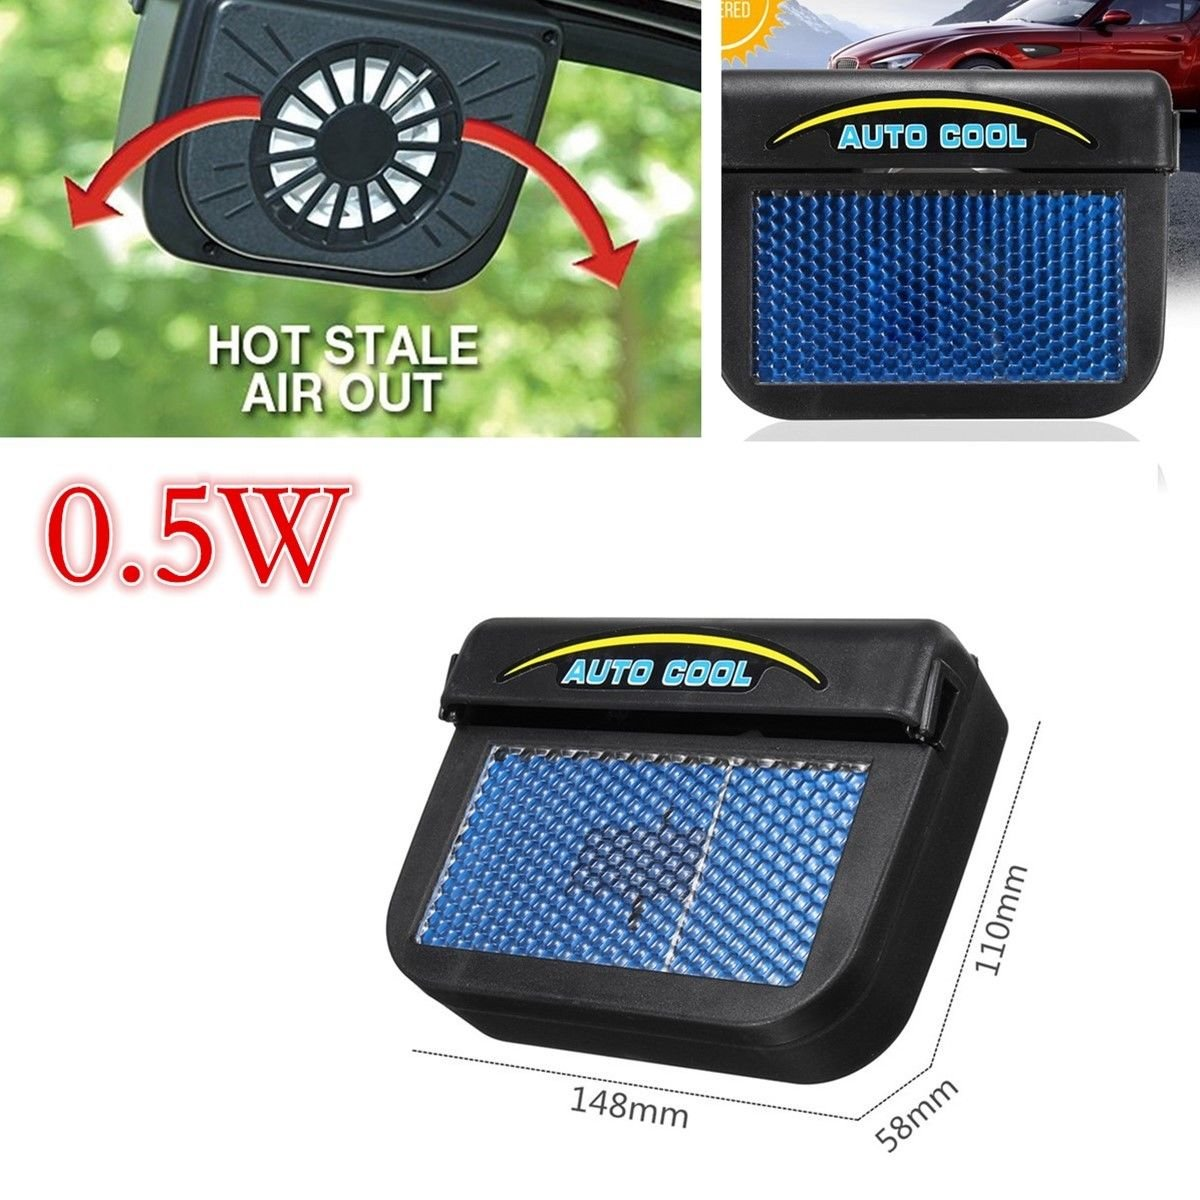 Qiyun Universal Popular 0.5W Solar Powered Auto Air Vent Cooling Fan Car Ventilation Cooler Radiator with Rubber Strip